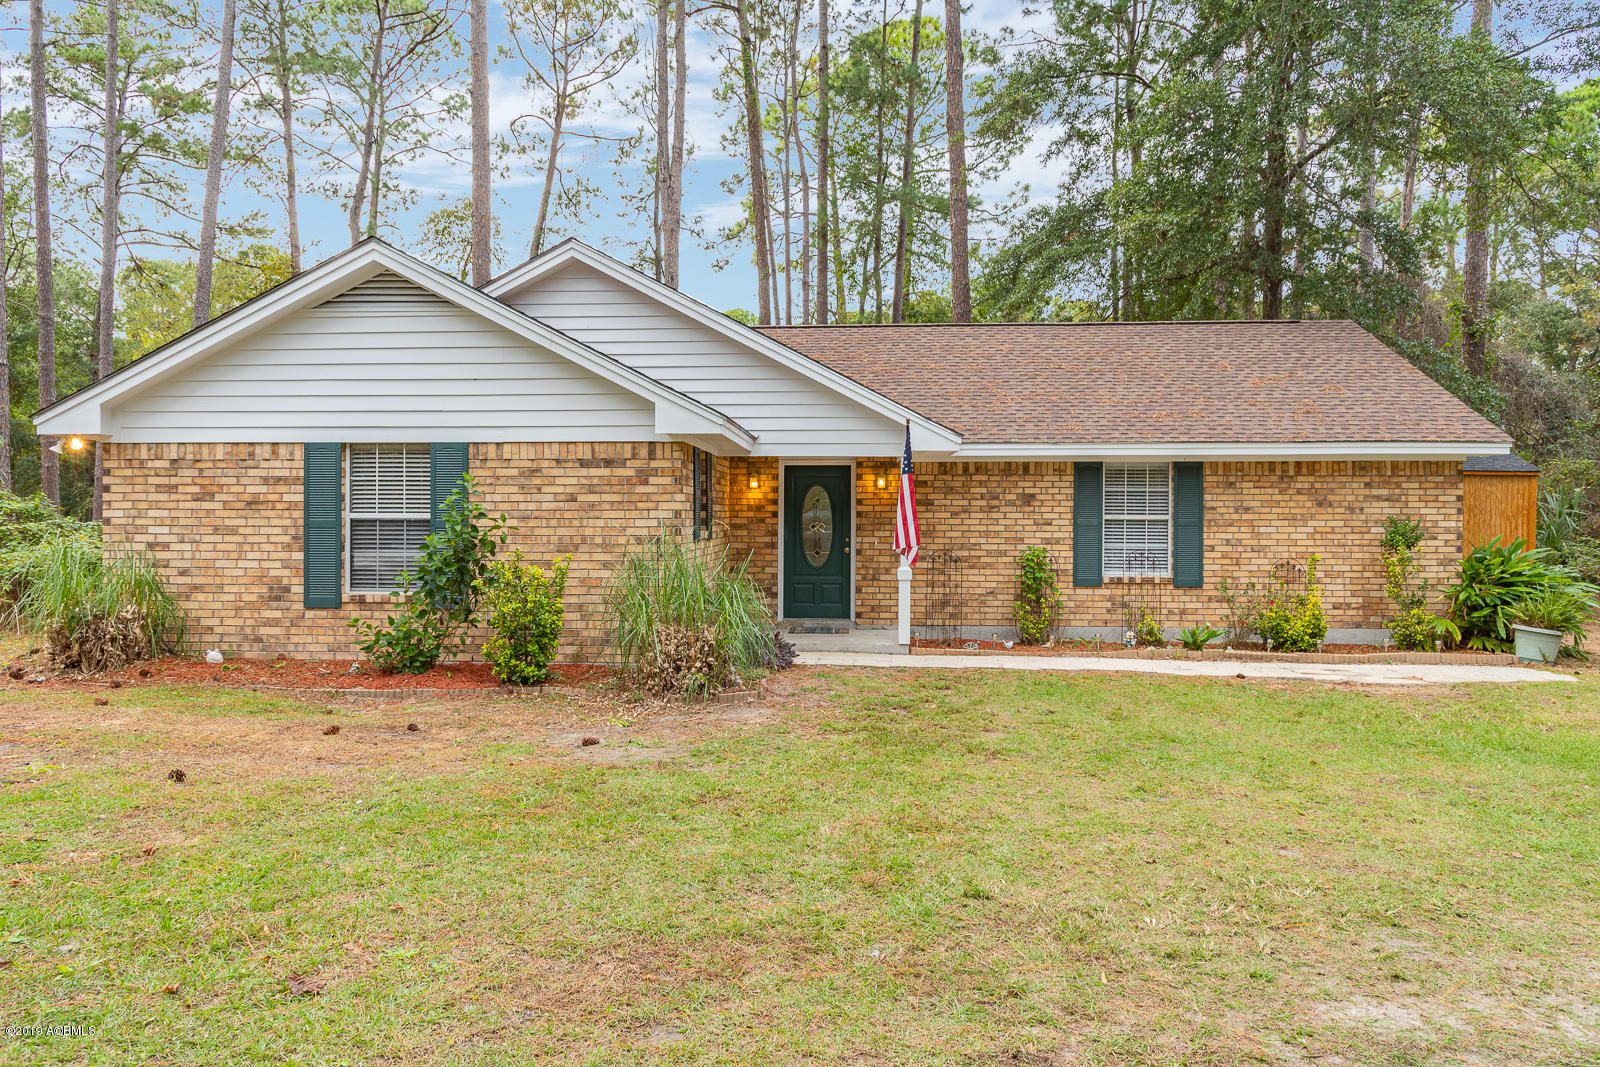 Photo of 481 Sams Point Road, Lady's Island, SC 29907